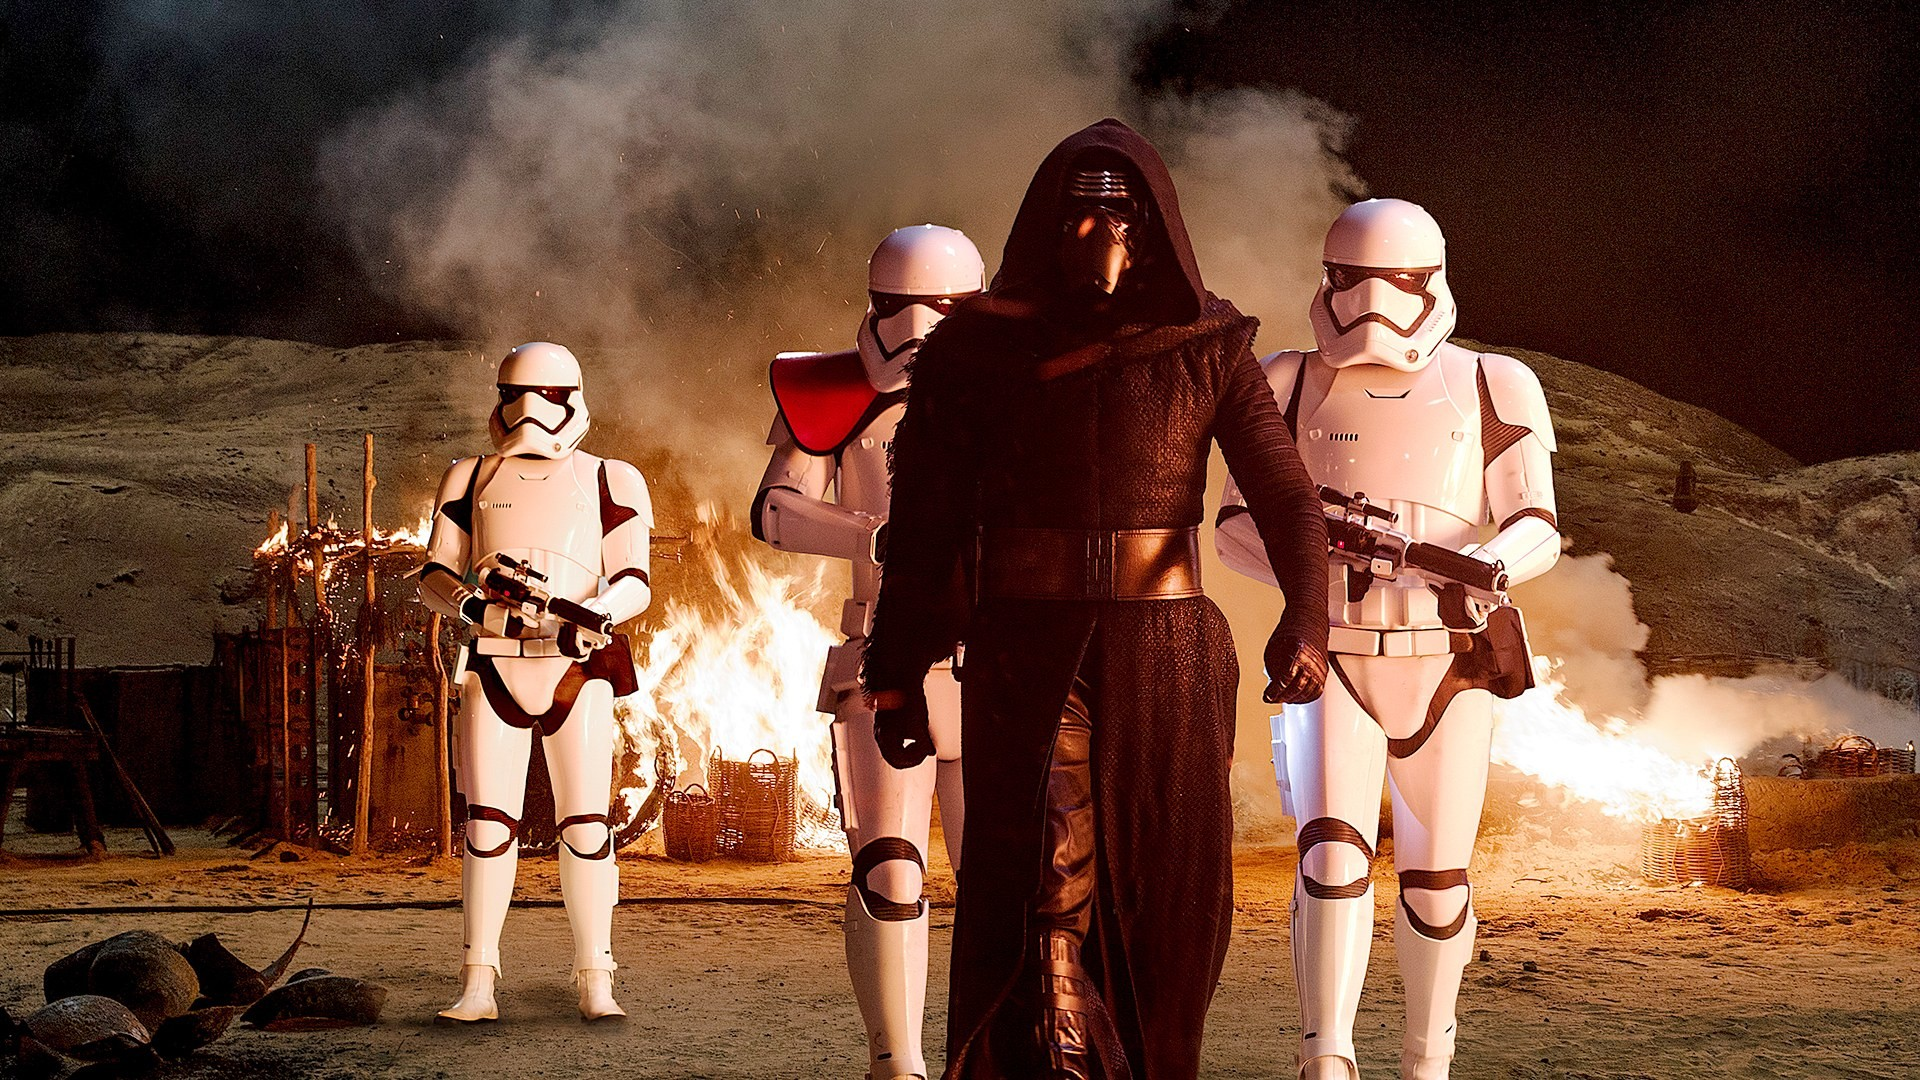 Star Wars: The Force Awakens—The WIRED Review